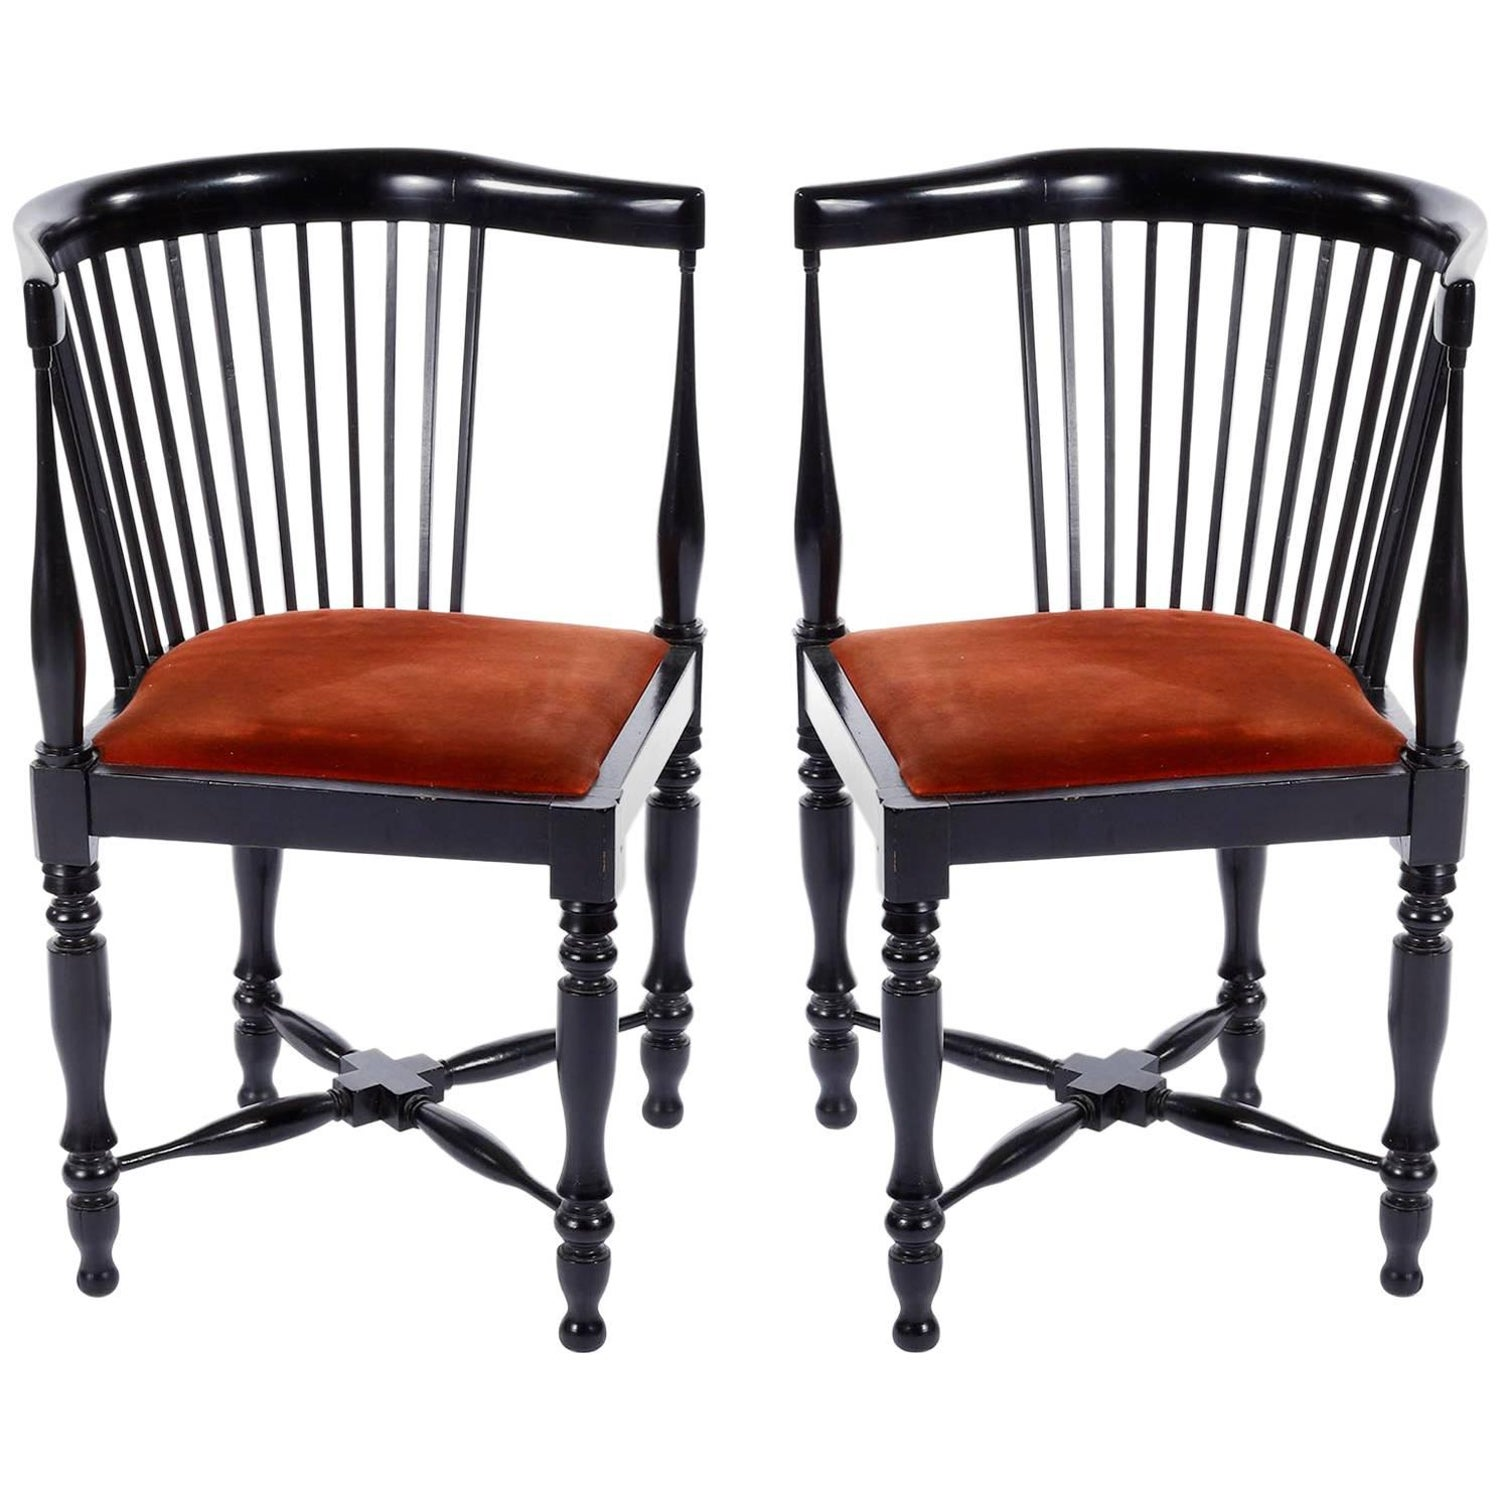 Adolf loos corner chairs f o schmidt velvet wood jugendstil 1898 1900 pair for sale at 1stdibs